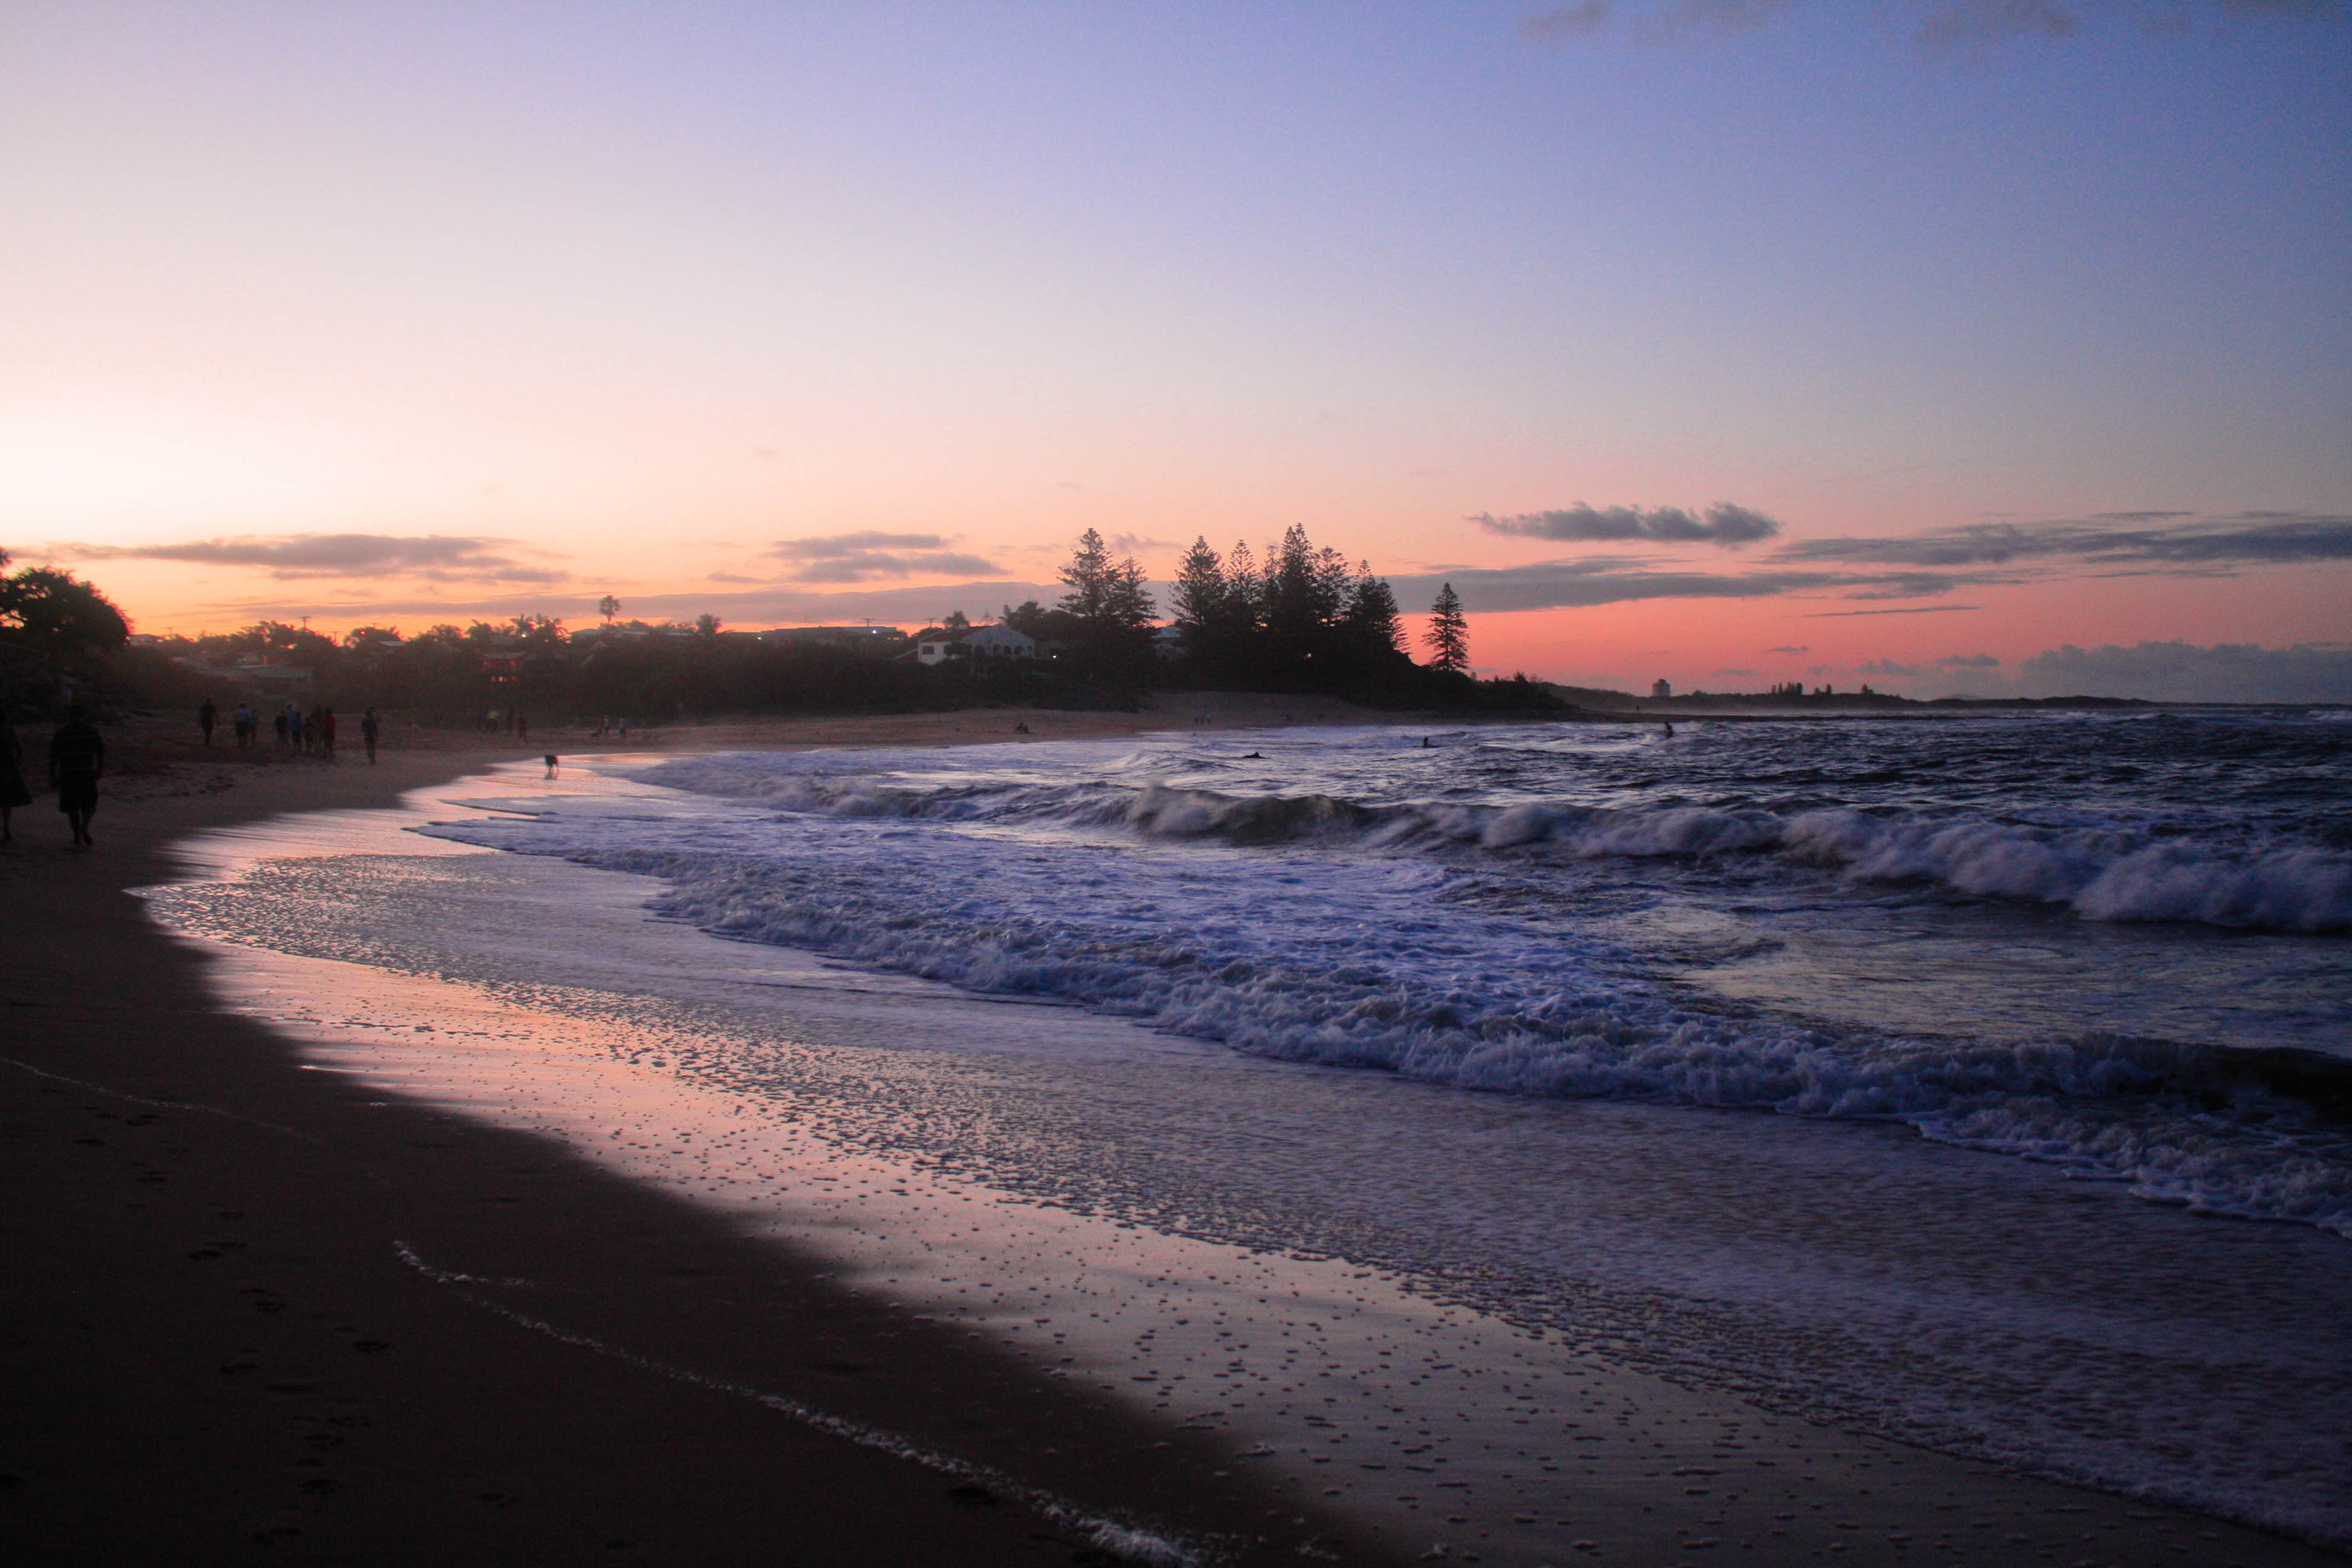 A photo of the waves rolling in at sunset. The beach curves around from the left foreground to middle background and the sky is a gradient of purple to pink.